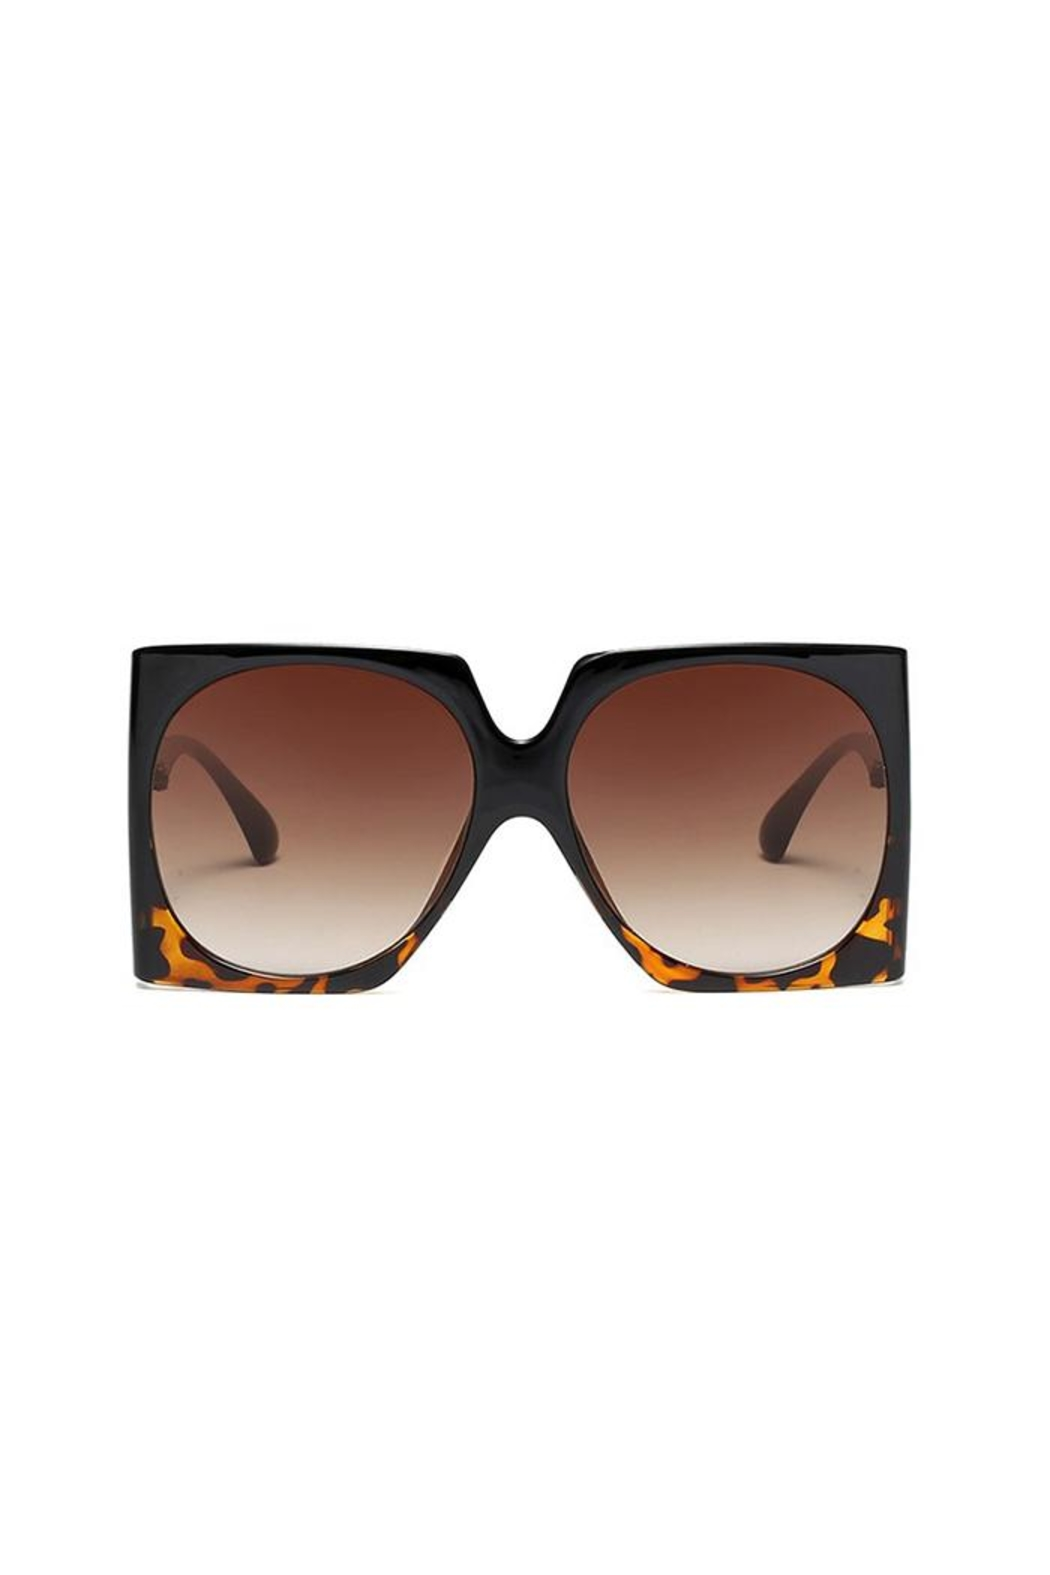 Madison Avenue Accessories Maggie Sunnies - Front Full Image